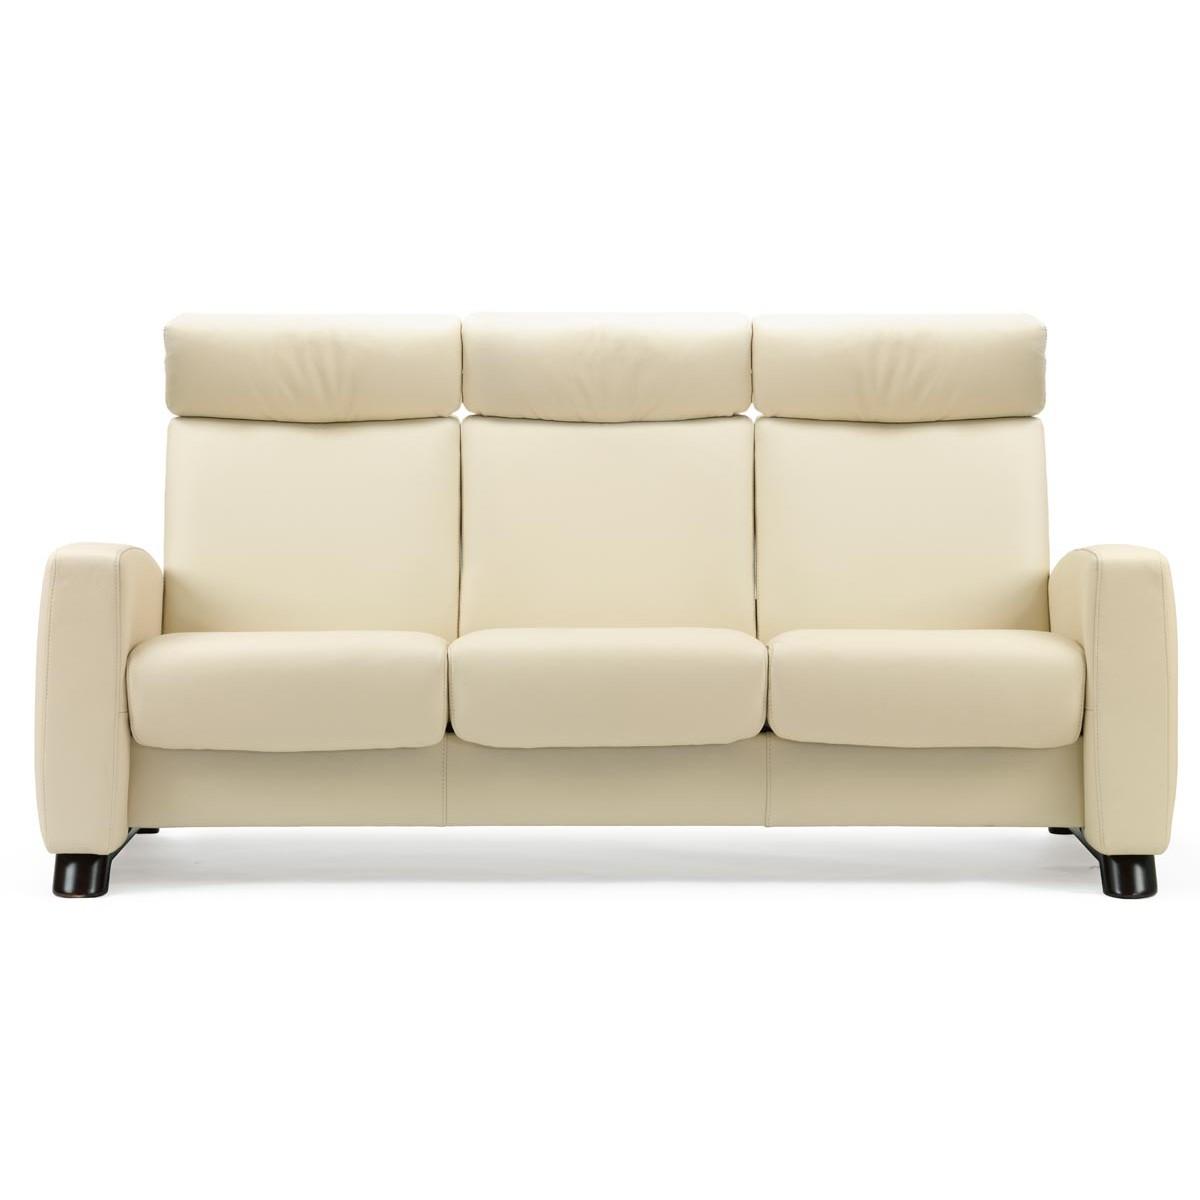 High Back Tufted Loveseat Best Emerson Sofa Quick Ship With High Back Tufted Loveseat High